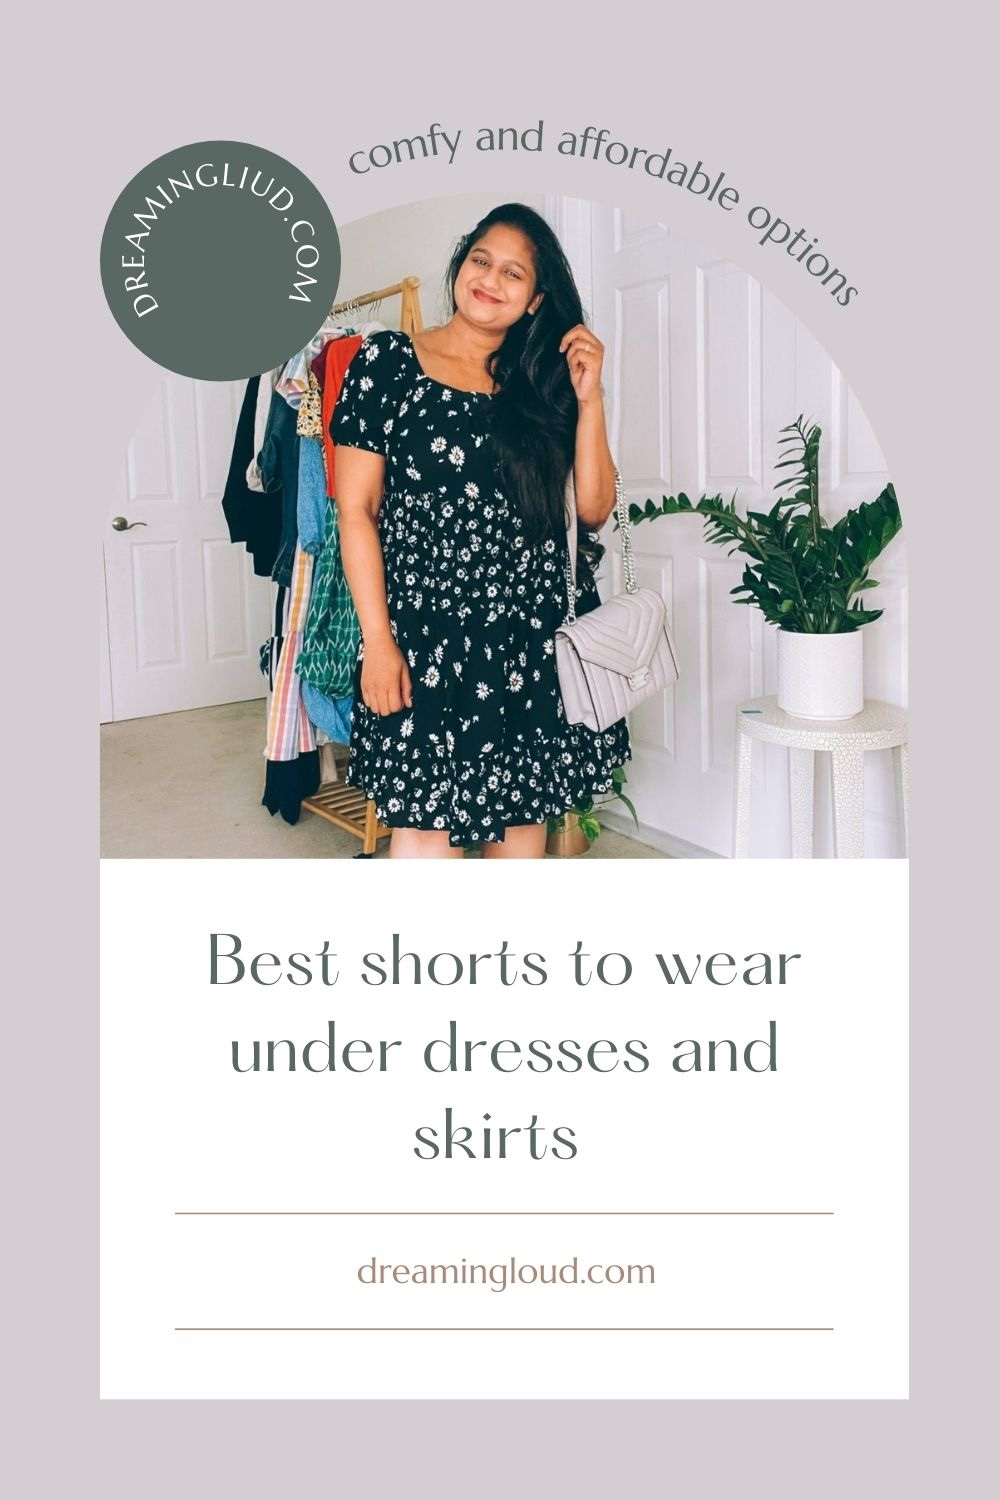 Shorts to Wear Under Dresses by popular Maryland modest fashion blog, Dreaming Loud: Pinterest image of a woman wearing a black midi floral print dress.